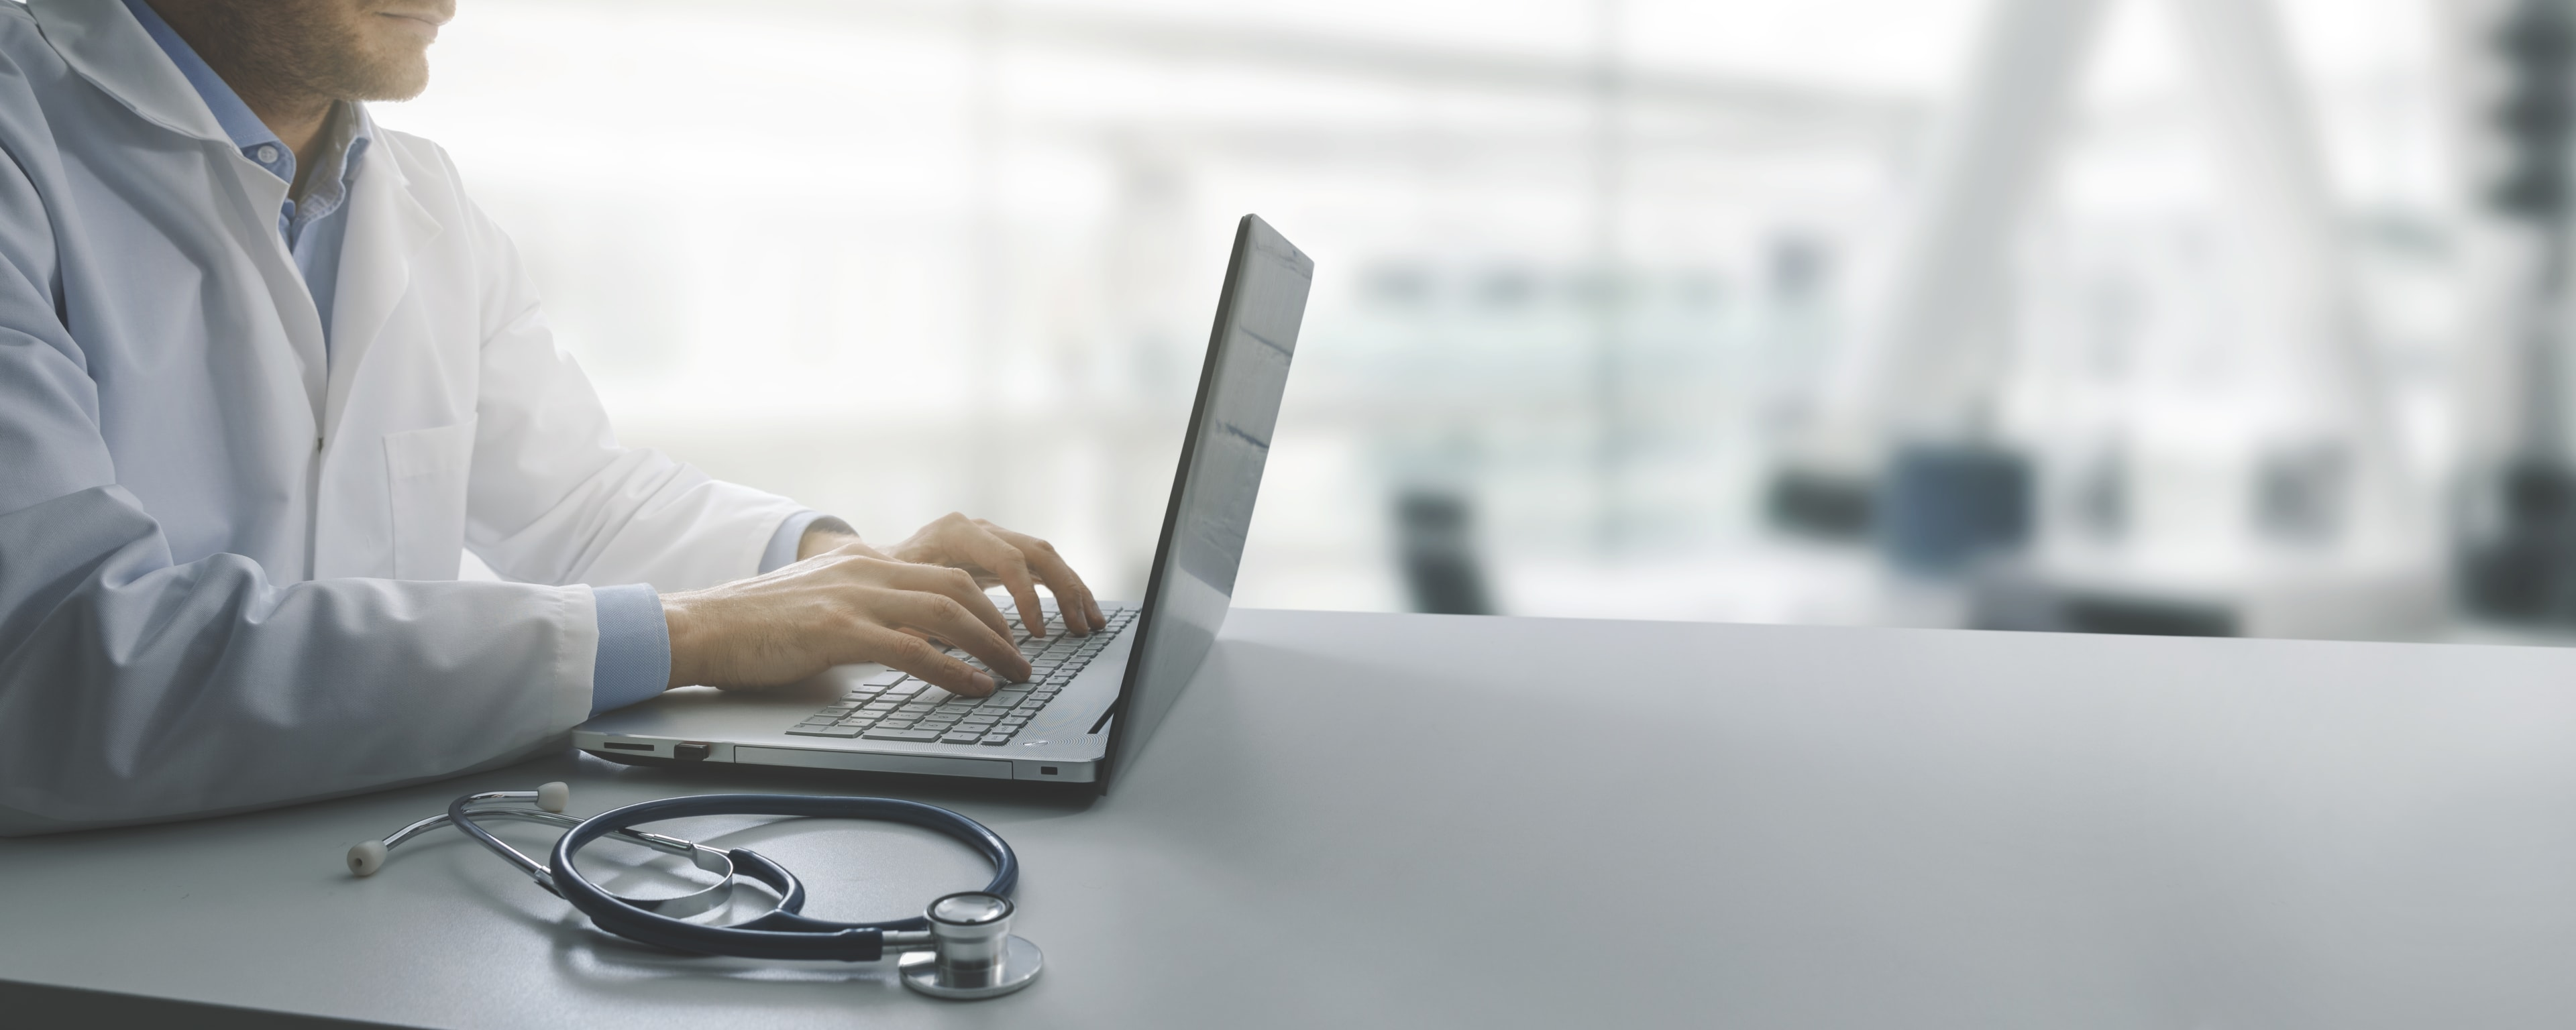 a healthcare provider typing on a laptop computer with a stethoscope placed on the table next to the laptop.